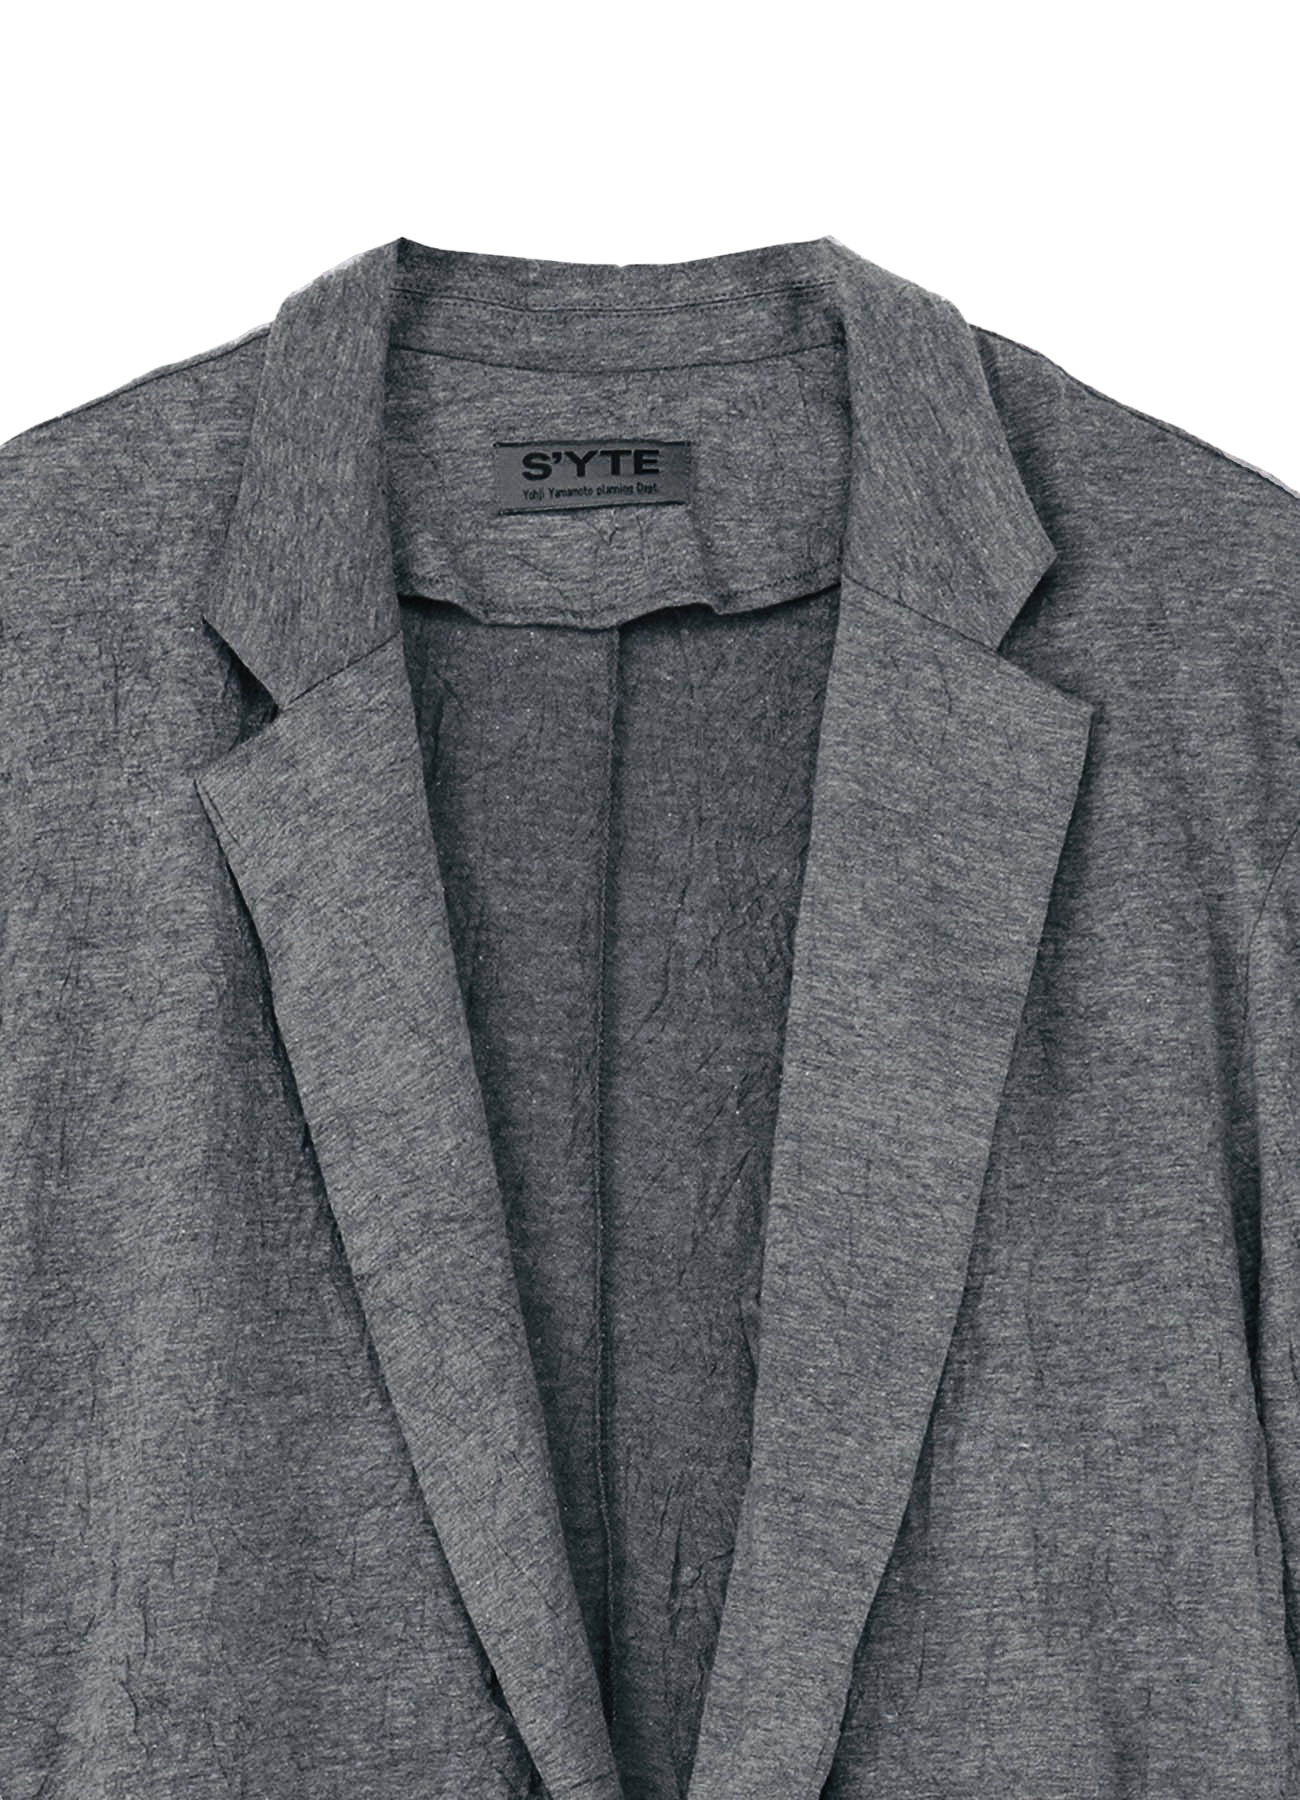 30/-T/C Jersey Catch Washer Tailored Cardigan Jacket